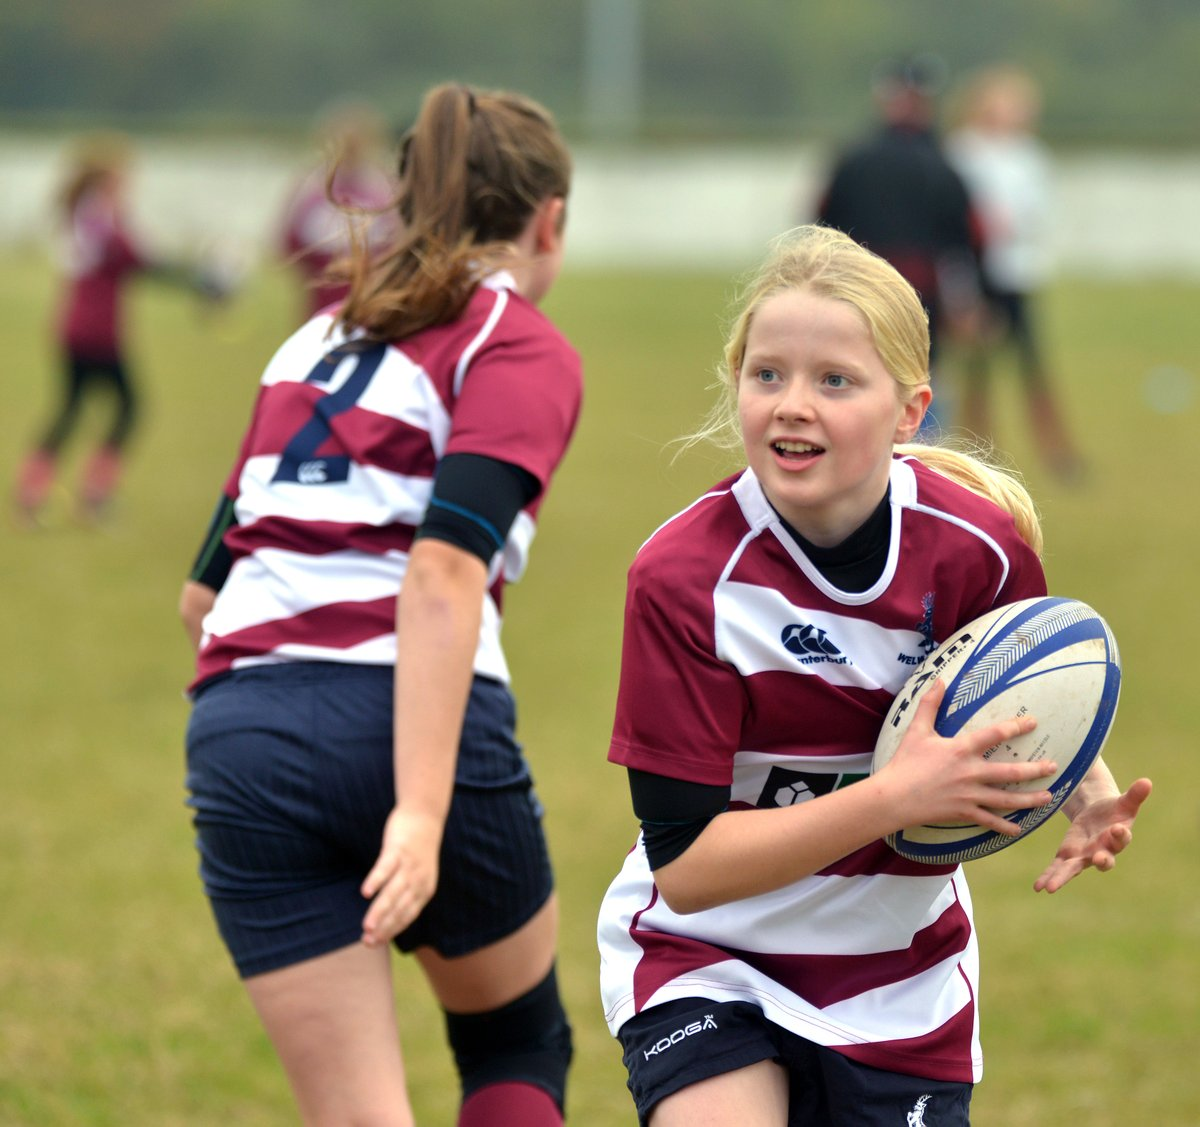 test Twitter Media - 150,000 children active through rugby 💪  @Sport_England's Active Lives survey shows an increase in physical activity among young people 📈  Find out more ➡️ https://t.co/LHhR9CU9a3 https://t.co/Yfb6Y0rF8X